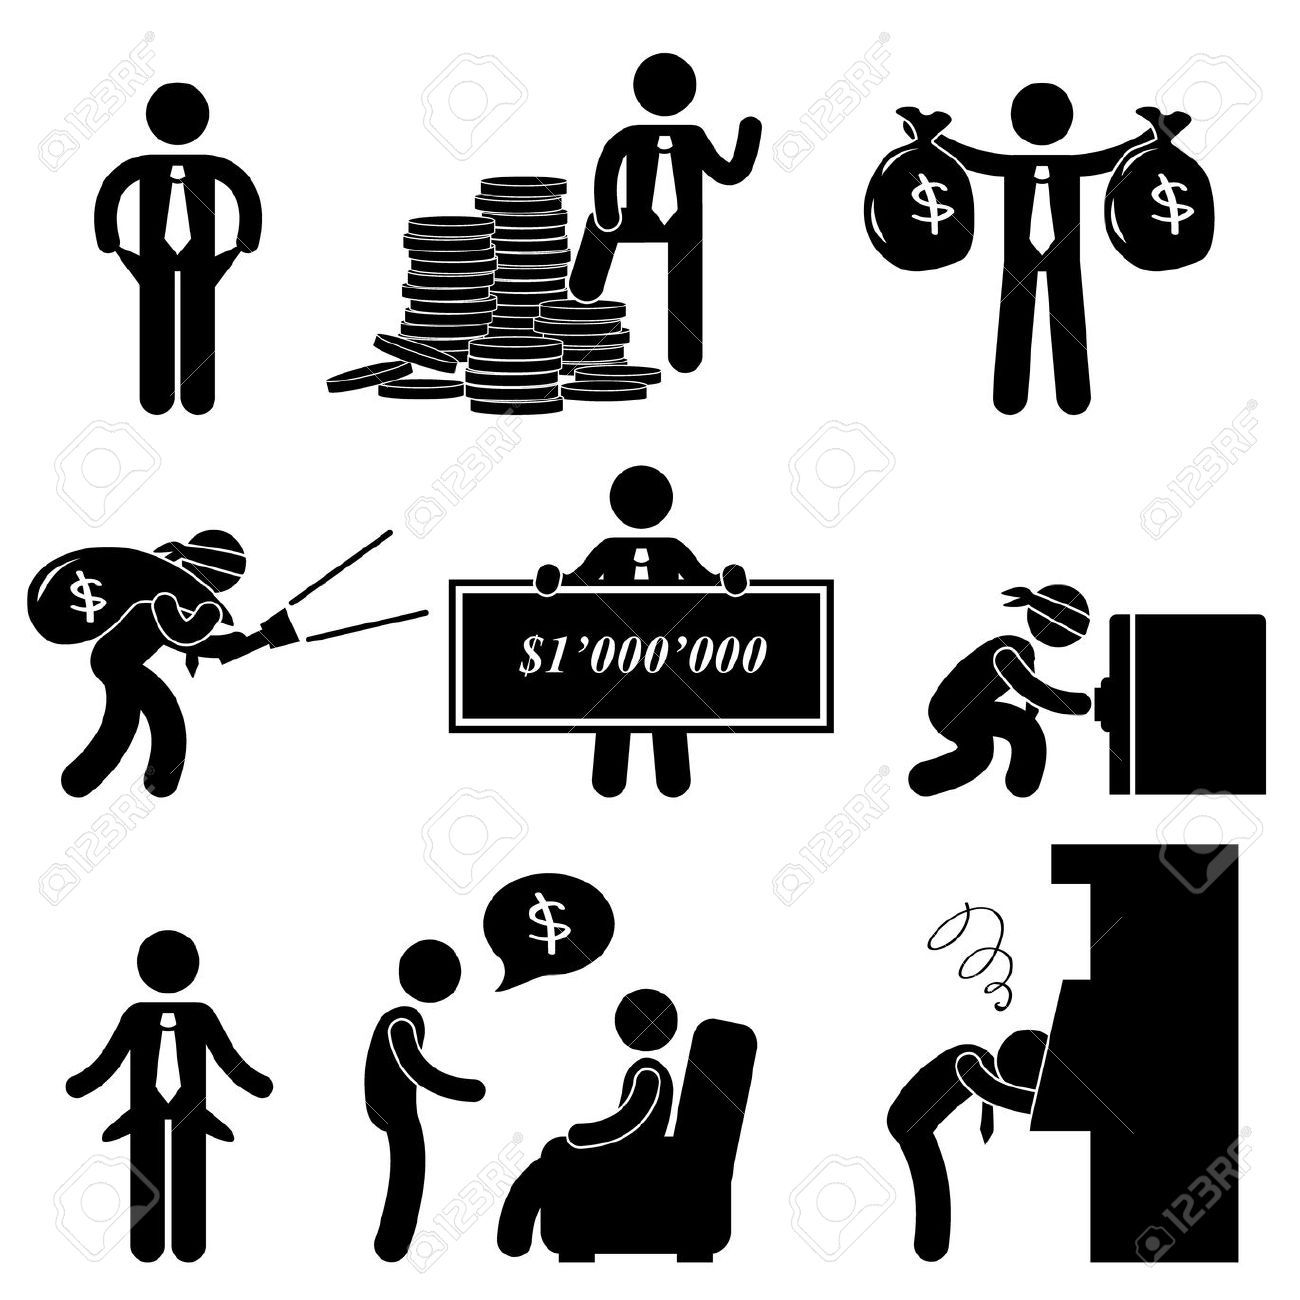 Stick figure clipart fail jpg freeuse Stock Vector | diagram | Pictogram, Character art, Stick figures jpg freeuse